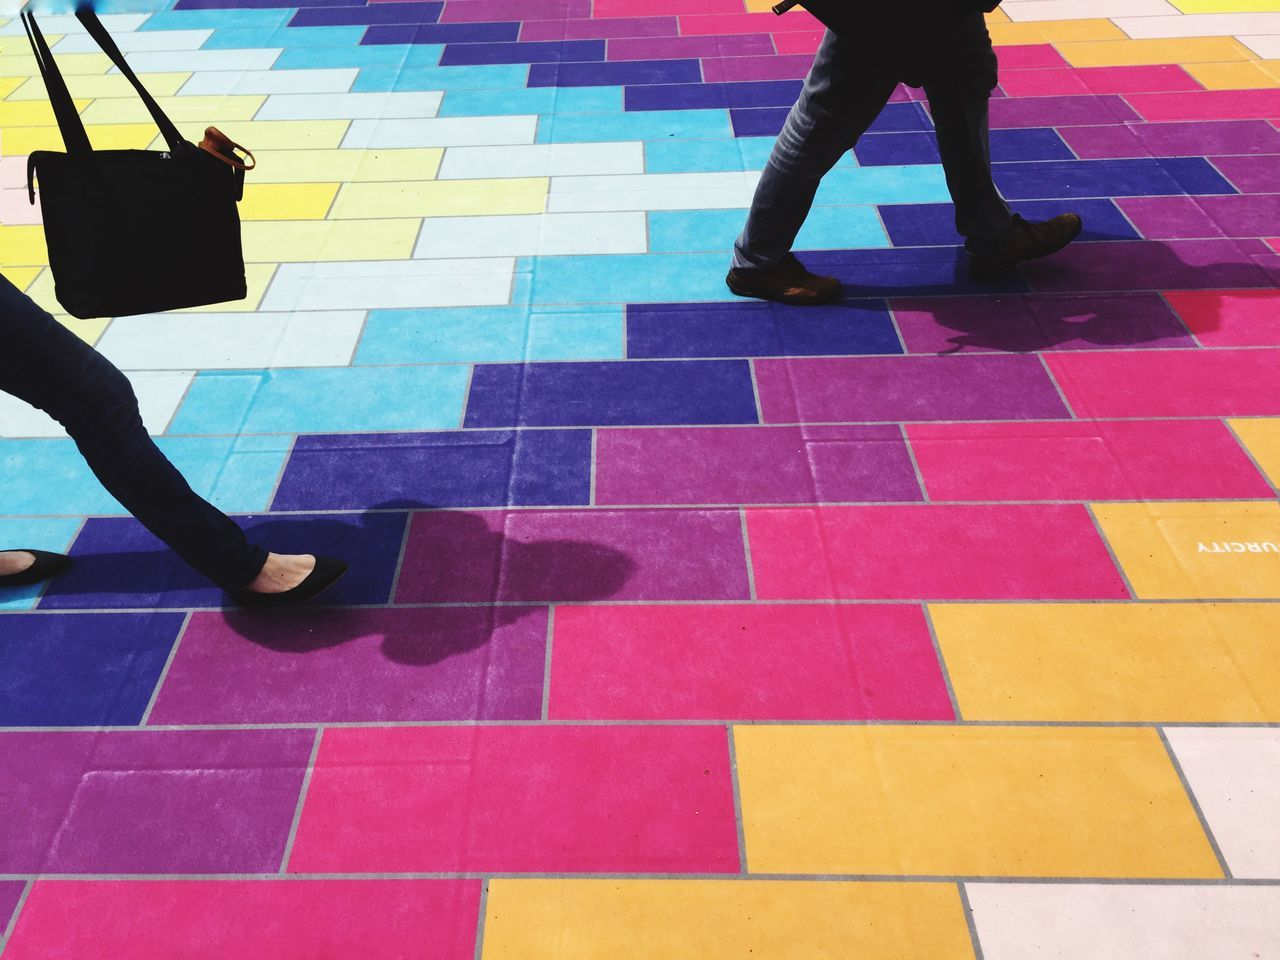 Low section of people walking on multi colored pattern floor